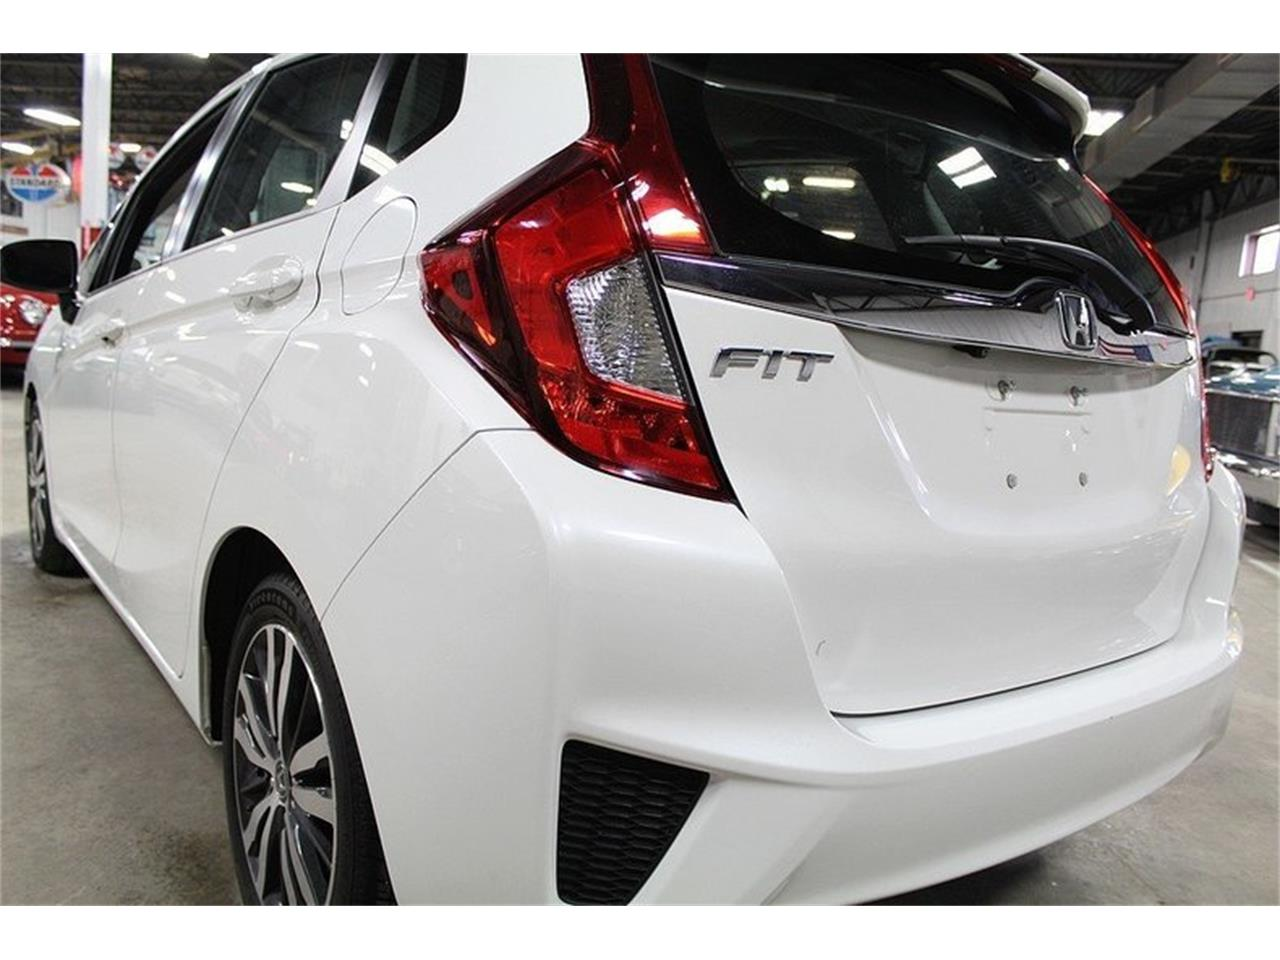 Large Picture of 2015 Fit Offered by GR Auto Gallery - MO4N